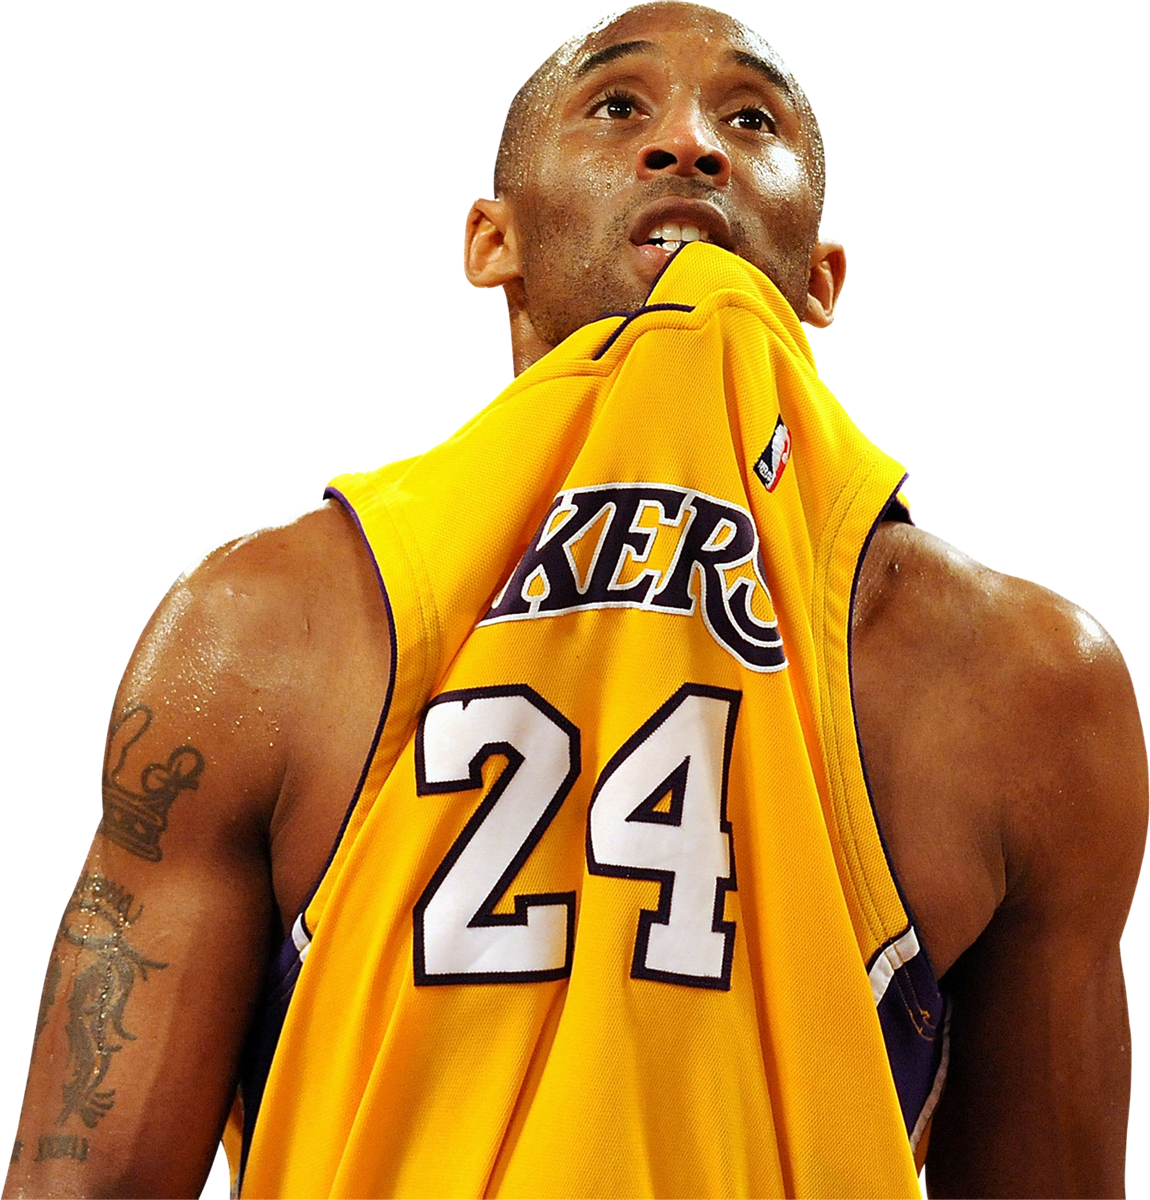 Kobe Bryant Transparent Free Kobe Bryant Transparent Png Transparent Images 45963 Pngio